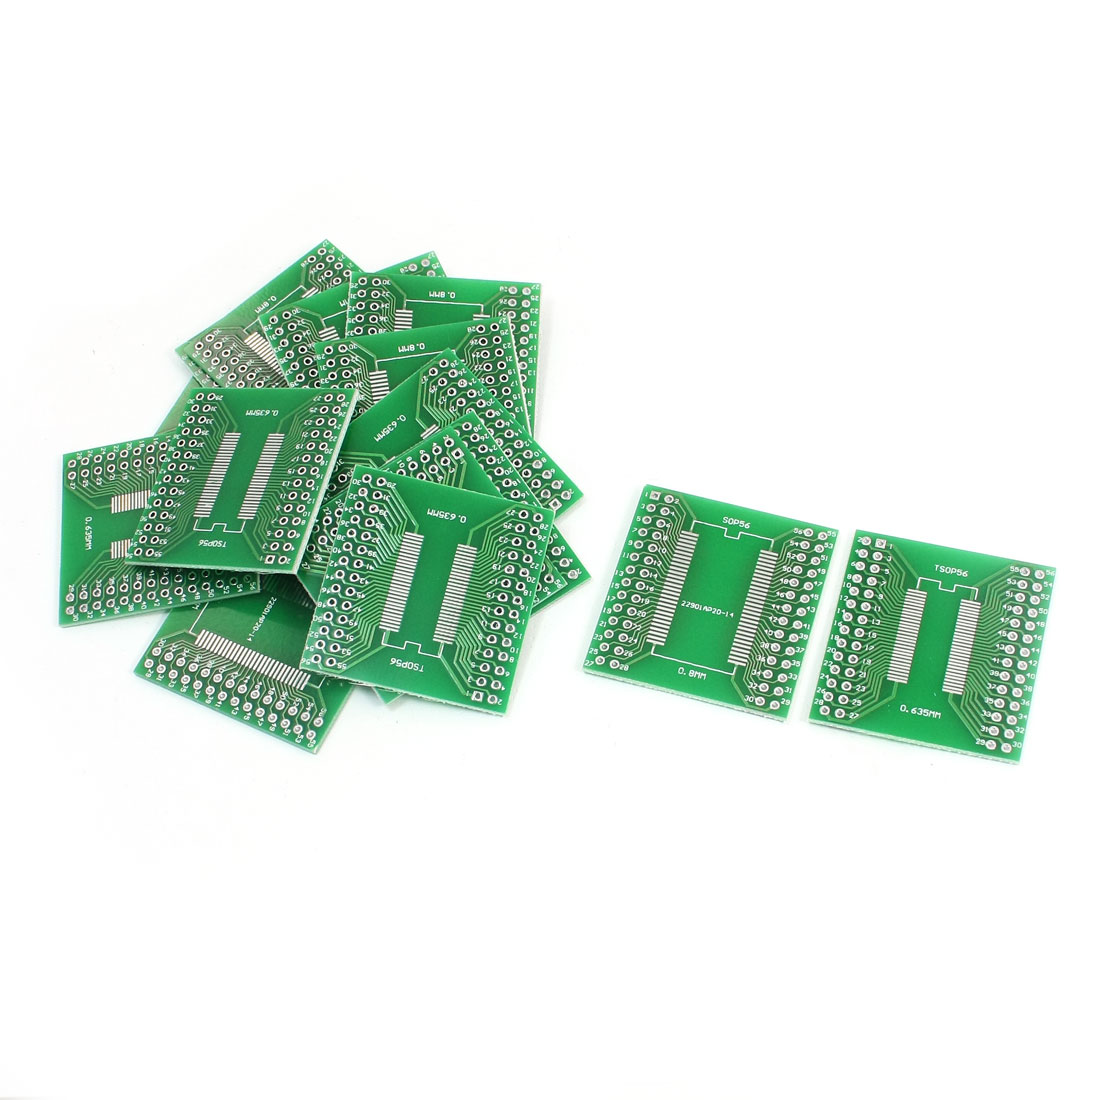 15 Pcs SMD SOP56 SSOP56 TSSOP56 0.635mm/0.8mm to DIP56 2.54mm IC PCB Plate Adapter Converter Board